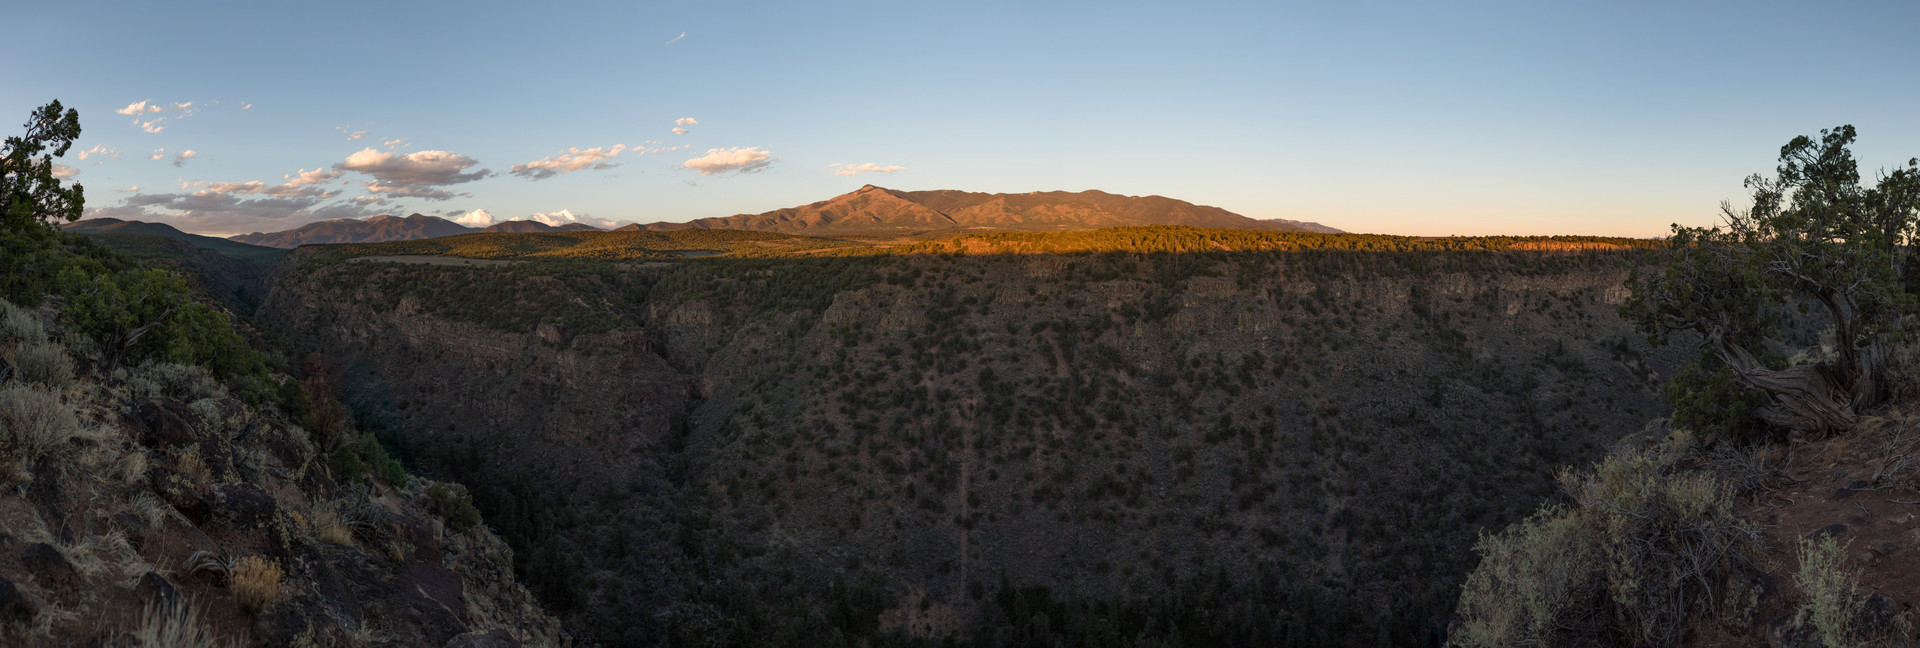 Panoramic image from the Rio Grande del Norte National Monument in New Mexico